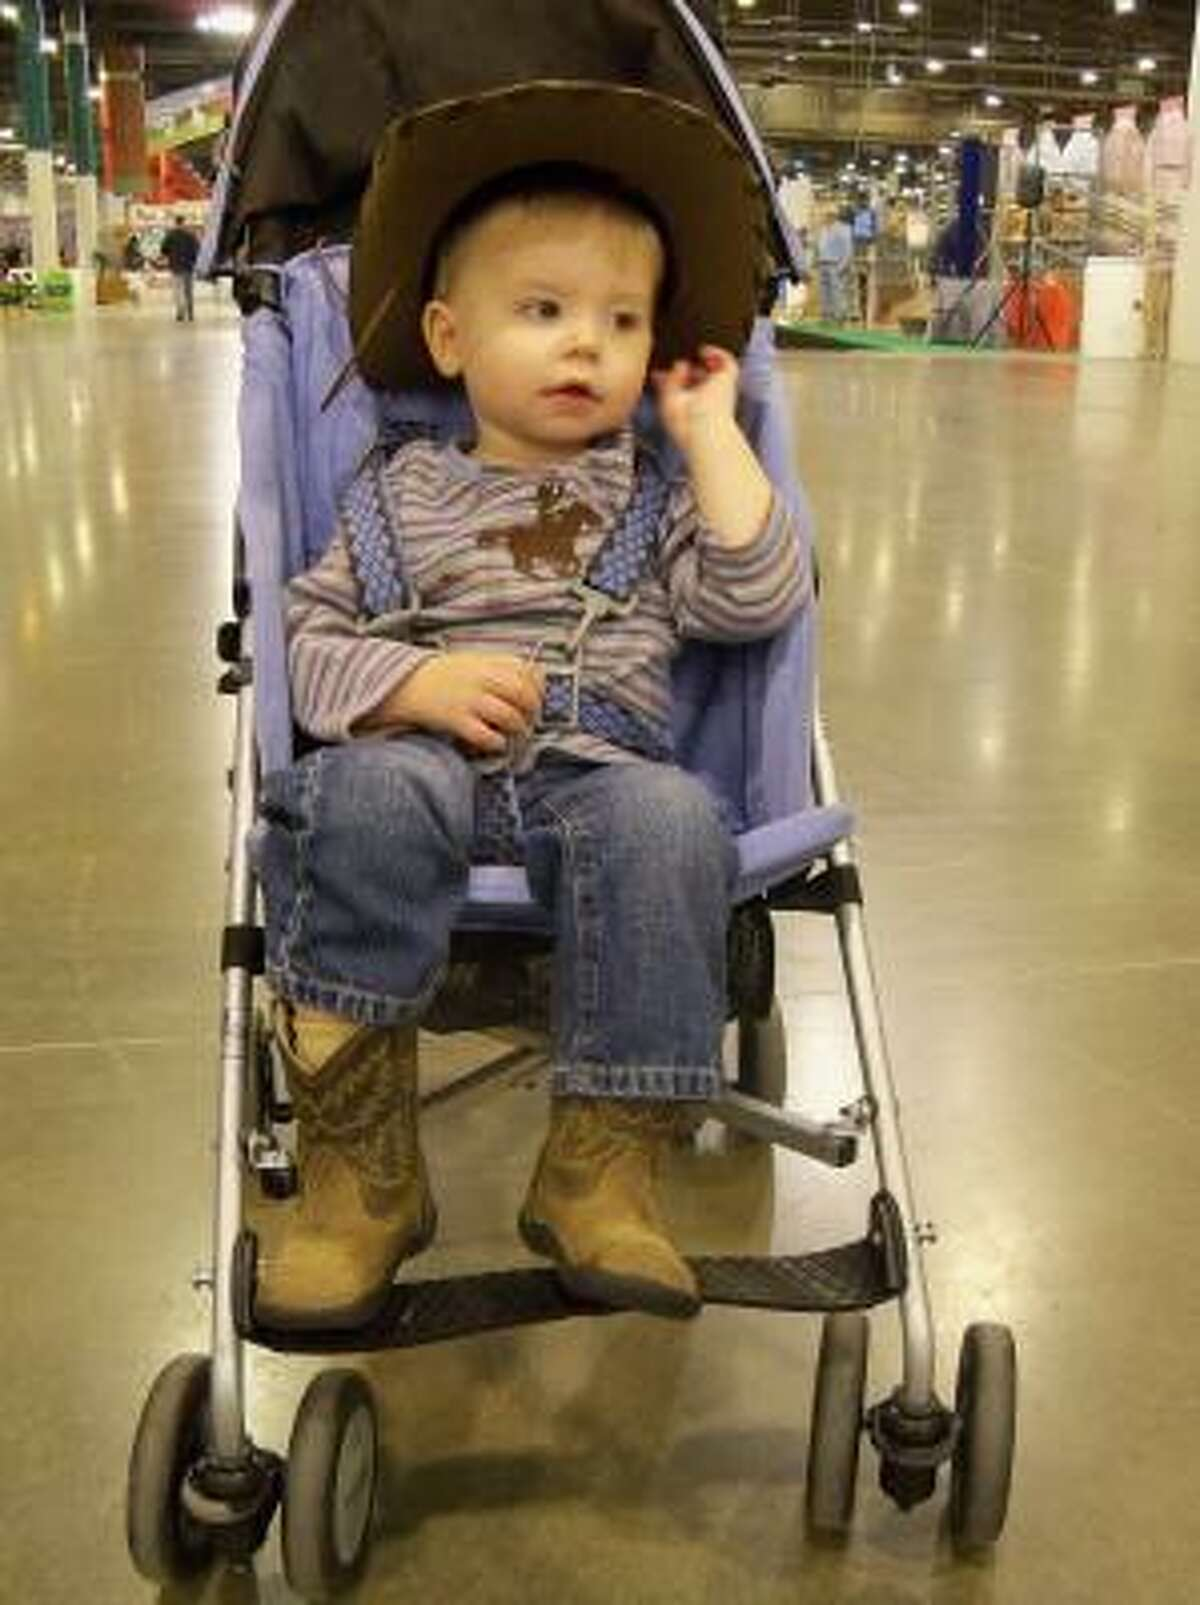 Nineteen-month-old Hudson McNab of Houston is making his second appearance at the Houston Livestock Show and Rodeo.